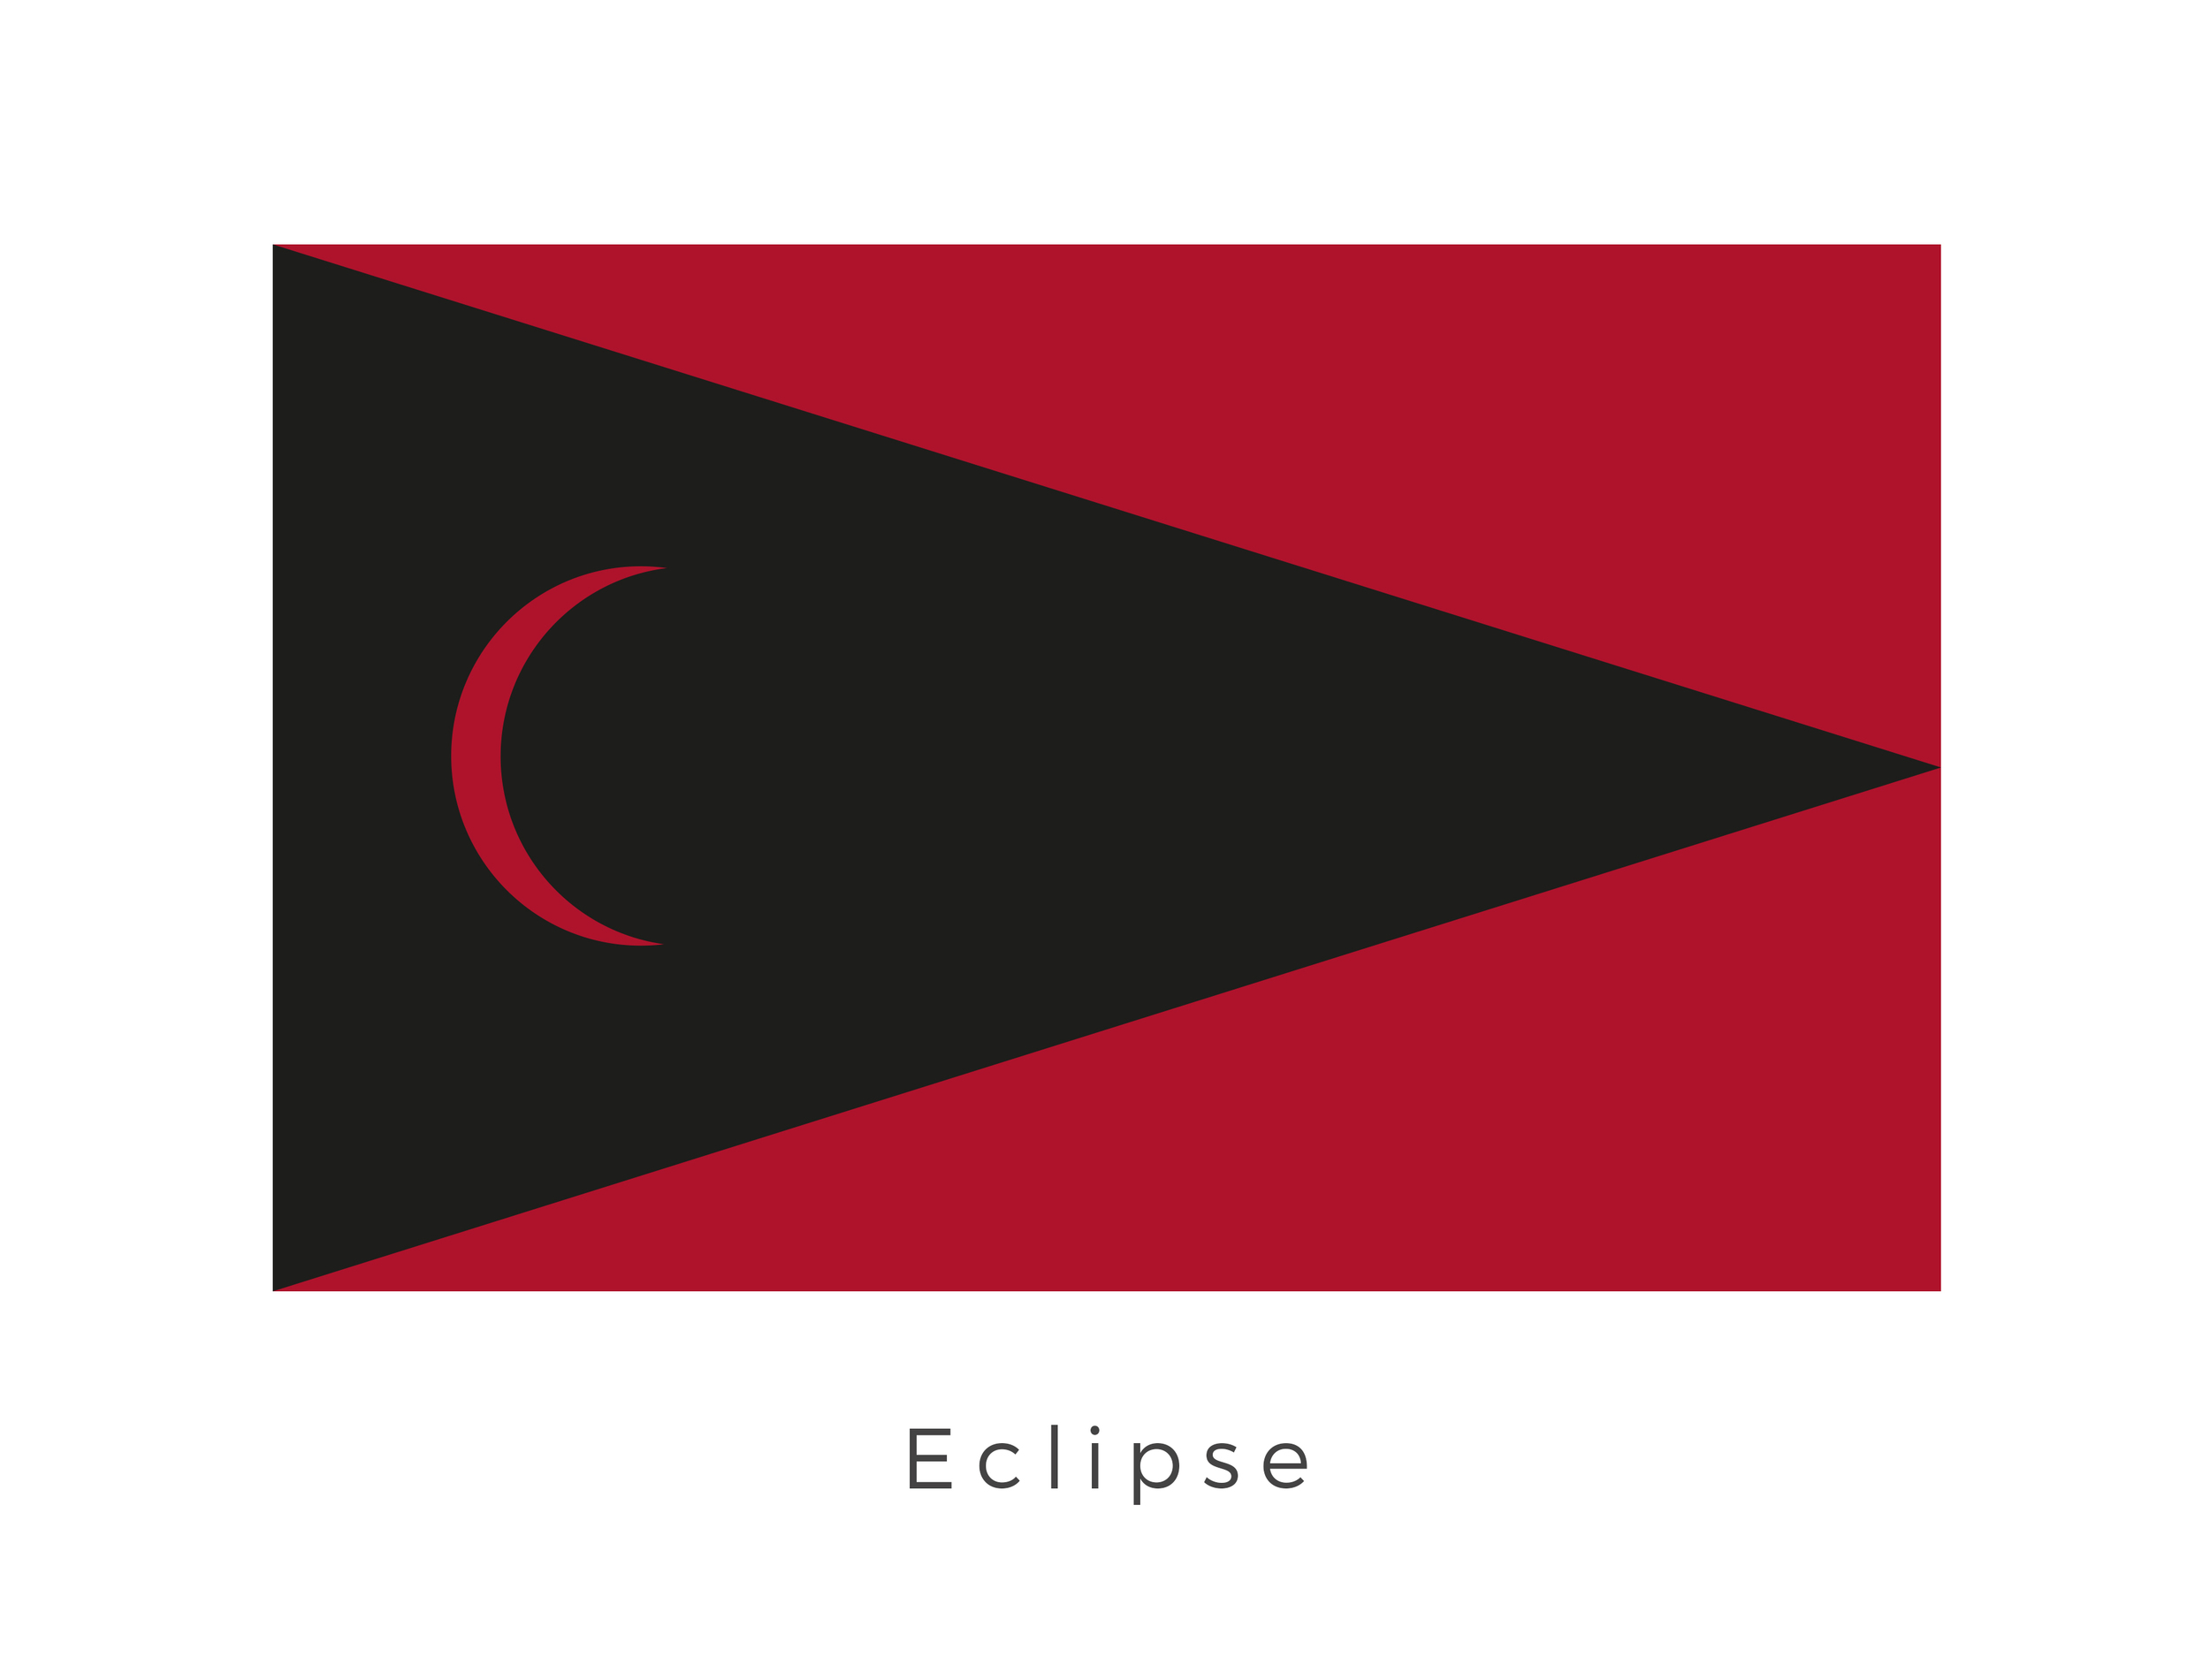 Eclipse  was a planet in the Deep Core, hidden in an asteroid field. The deep core was not easily accessible and so the inhabitants came to see themselves as living in the shadow of the asteroid field. The black chevron graphic in the flag design represents this belief. The red signifies the colour of the planet surface.